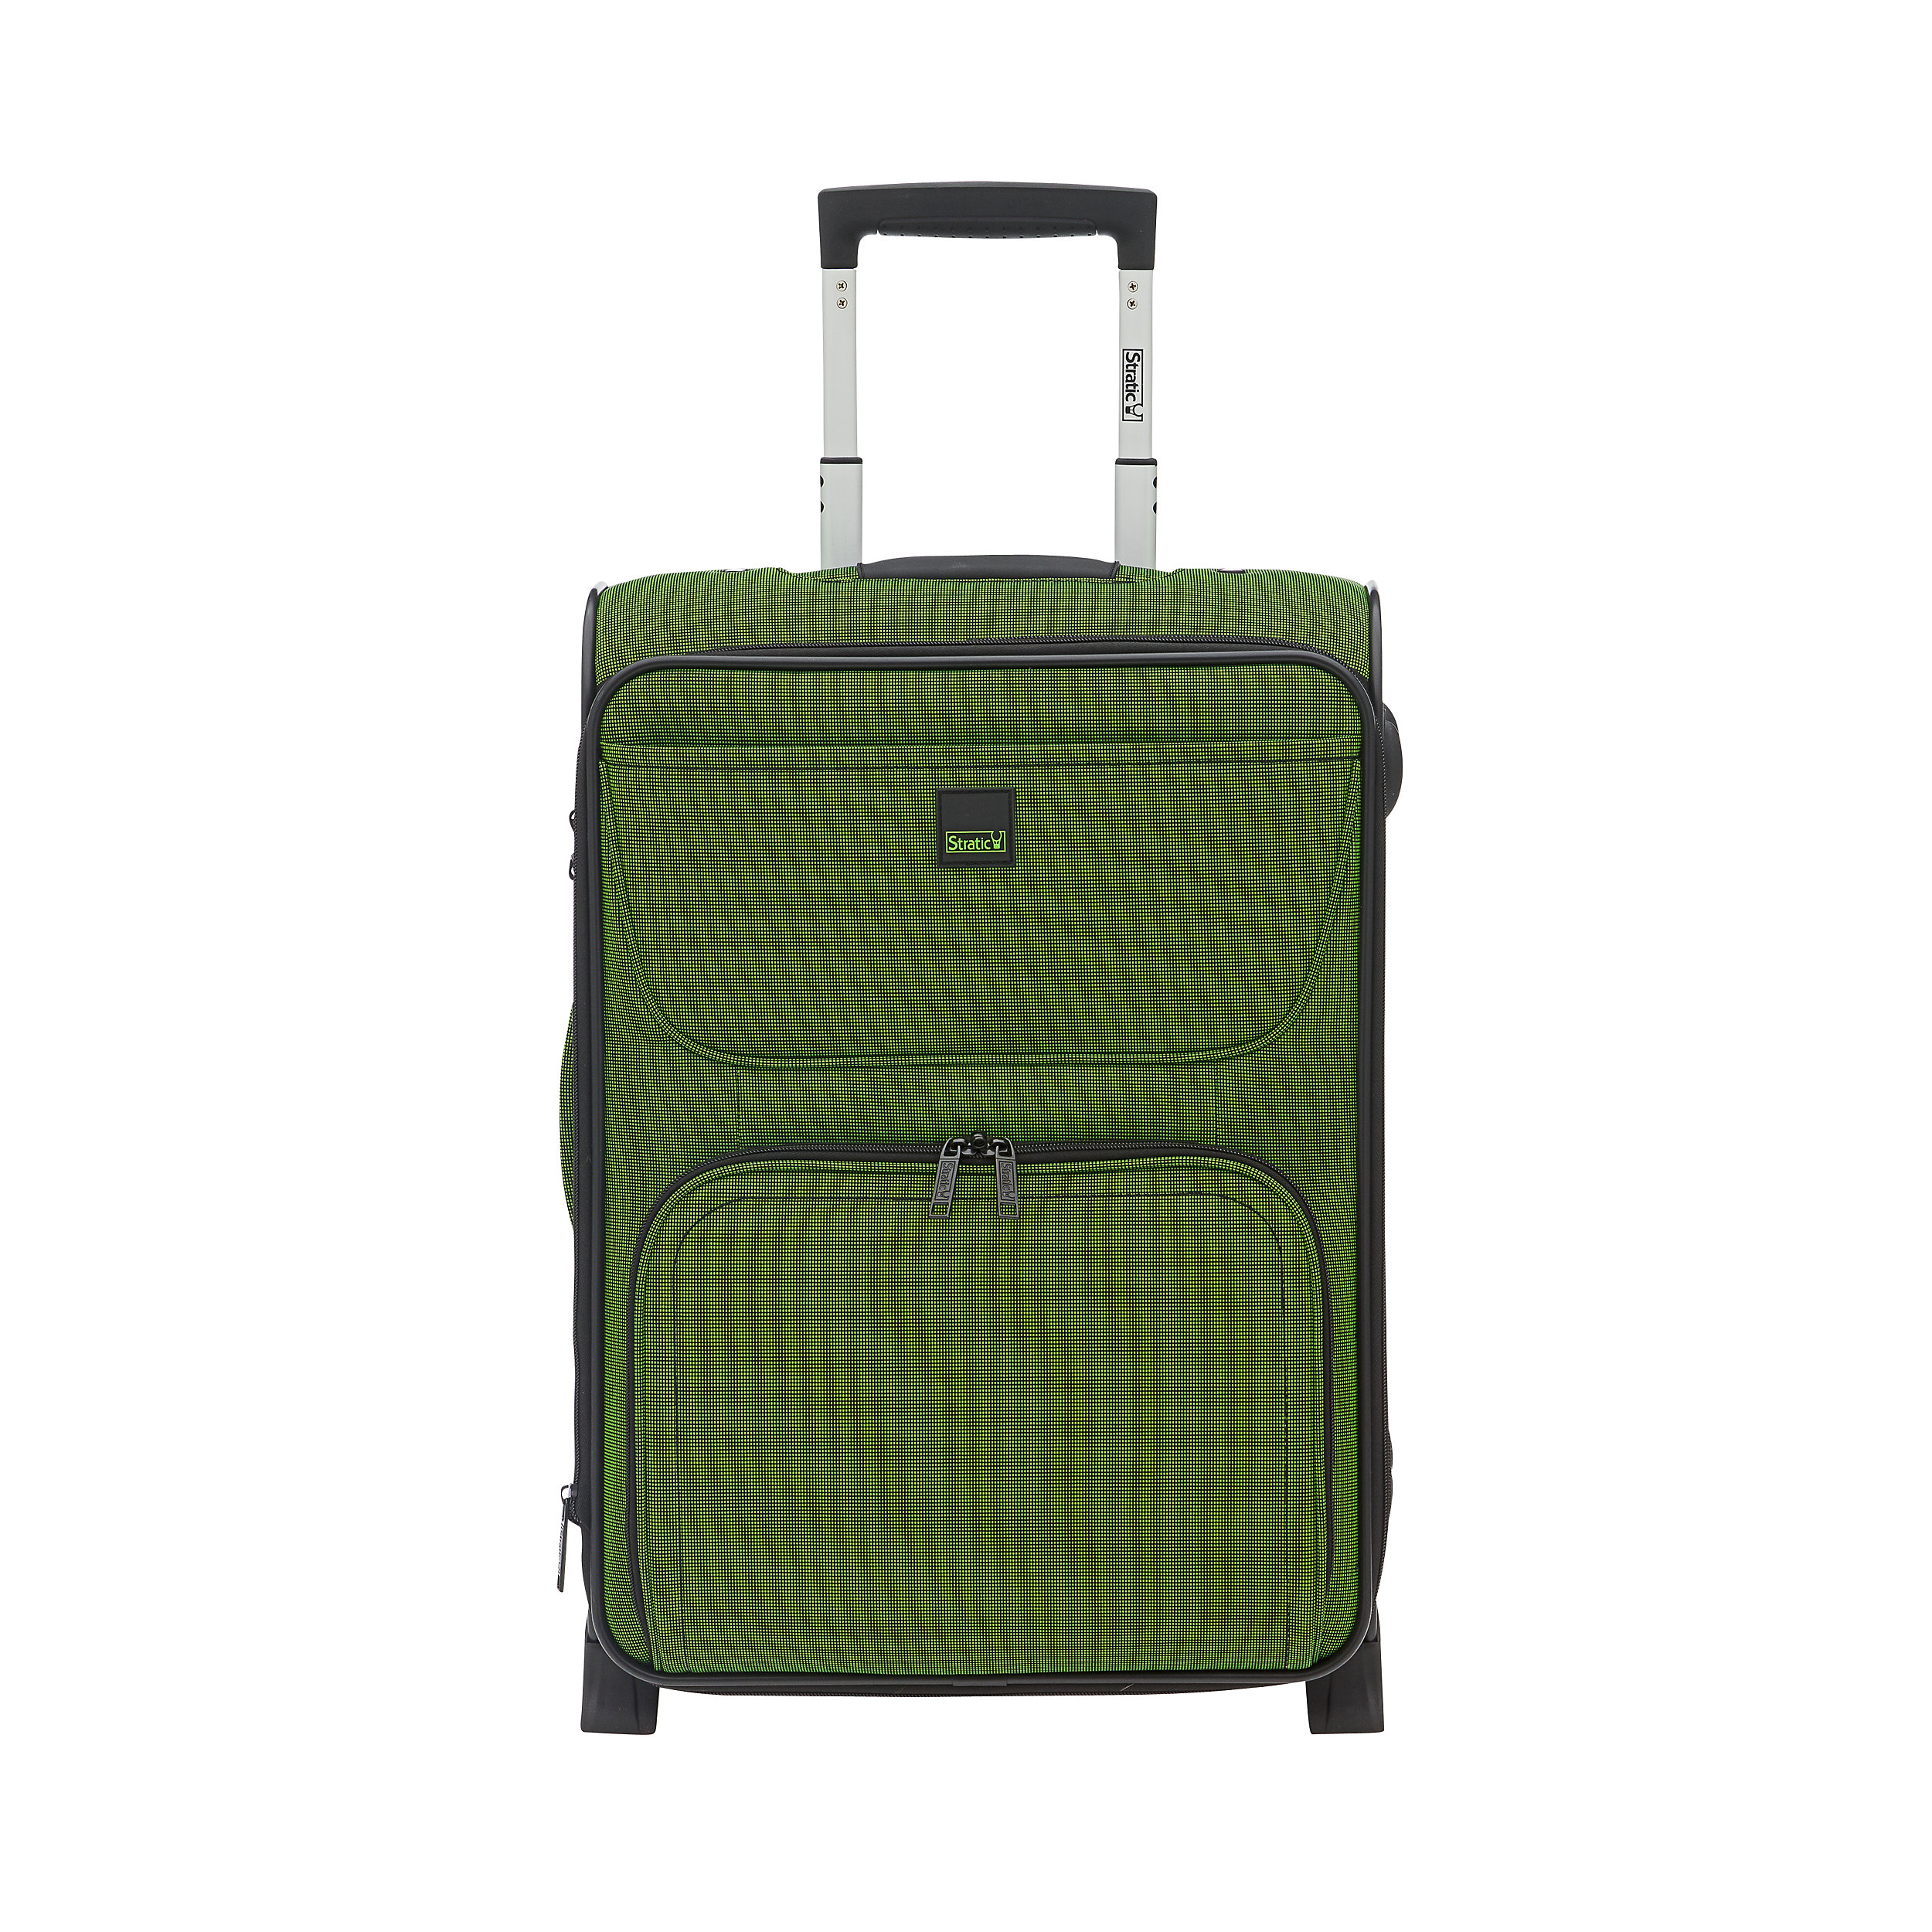 Carry-on Trolley with 2 wheels 55cm EXP Bendigo 4 S 38 Liter